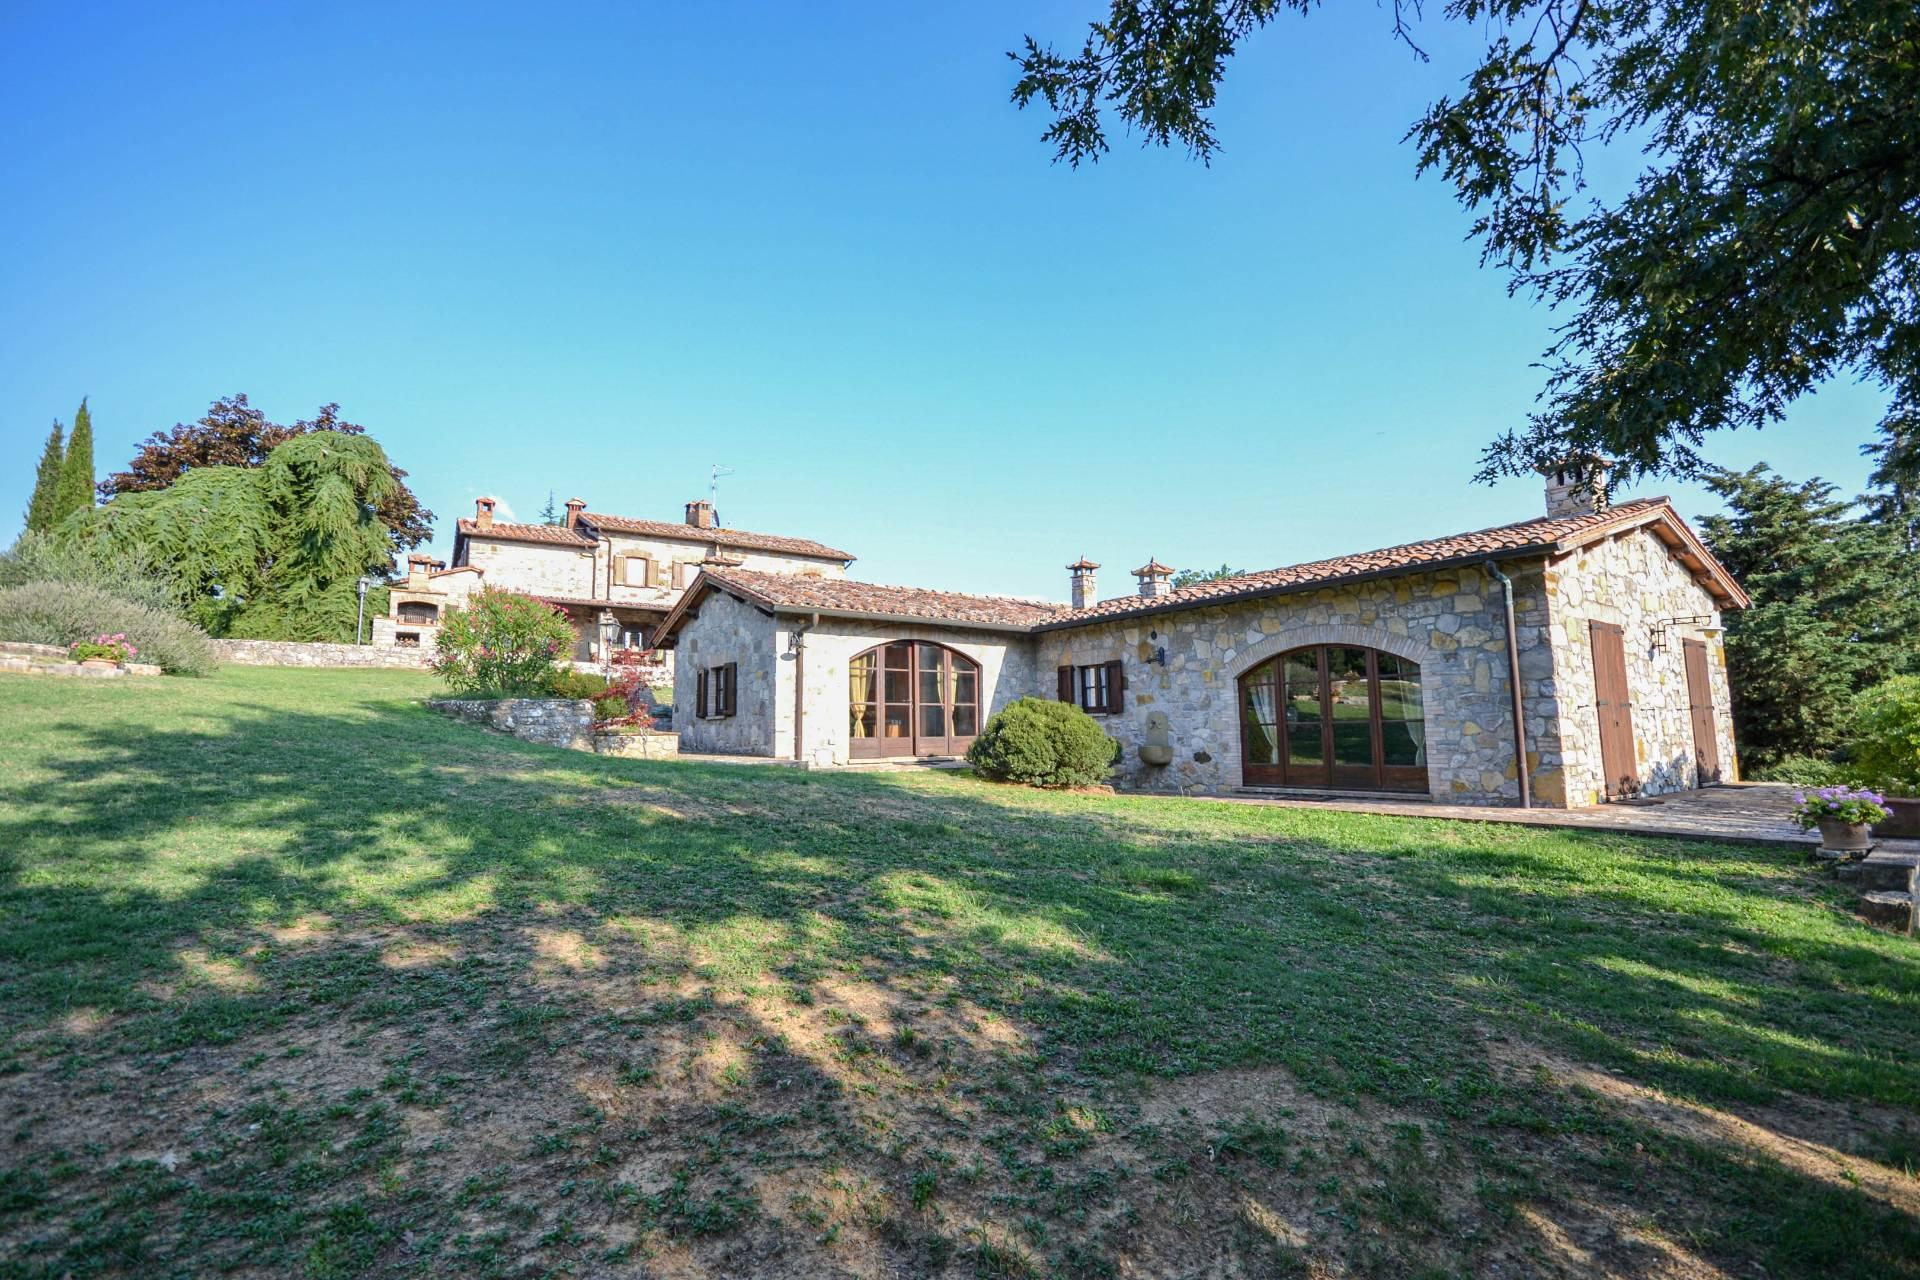 Wonderful property in the heart of Umbria - 2